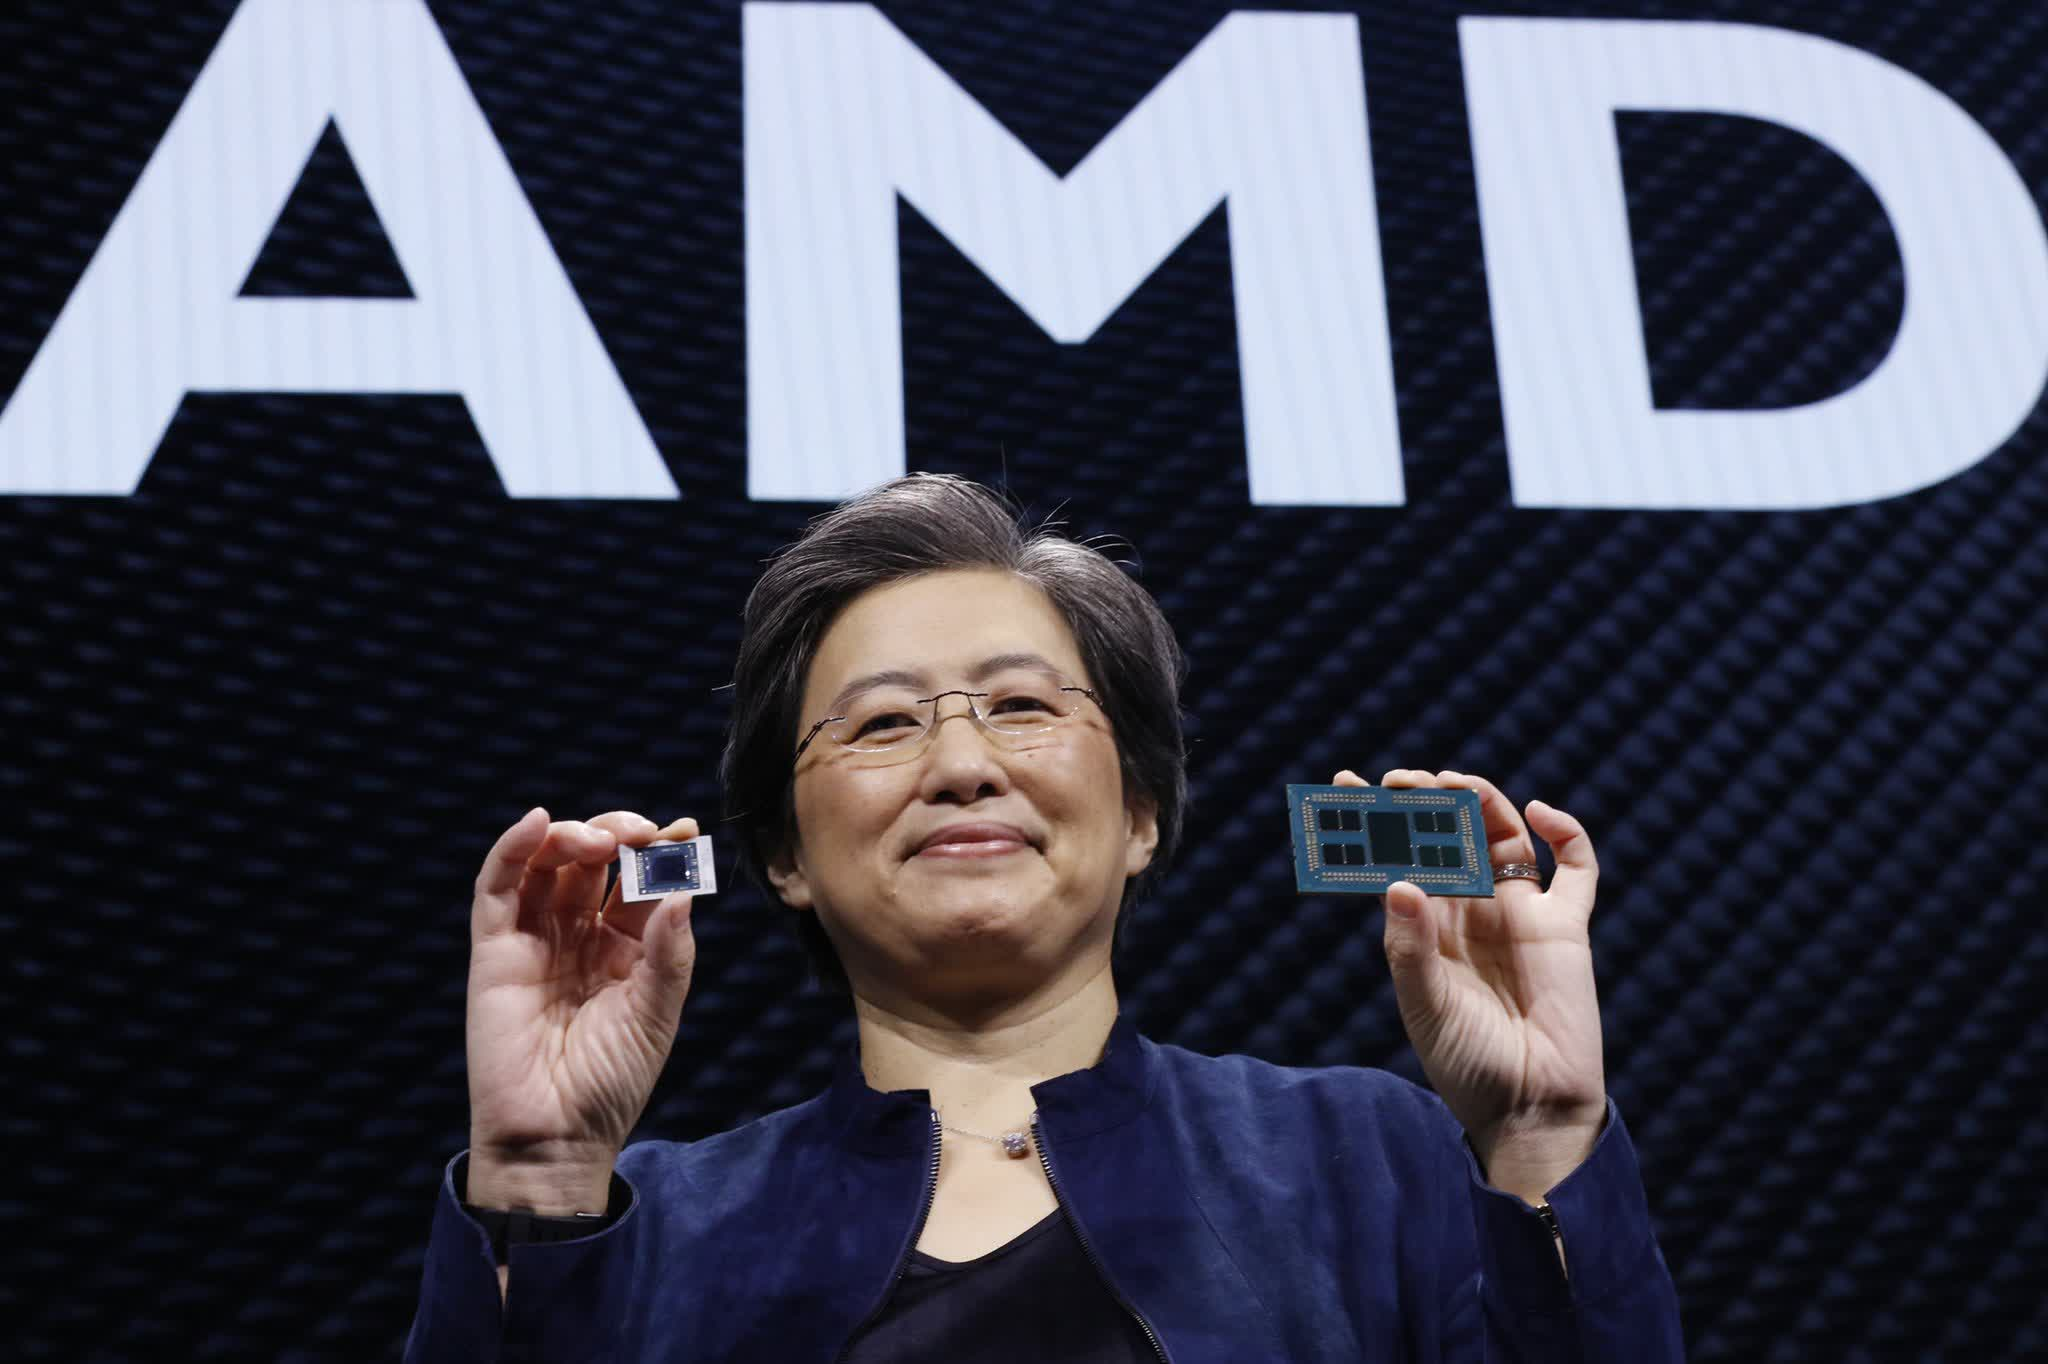 AMD captures 22.5 percent of the x86 CPU market, the highest share since 2007